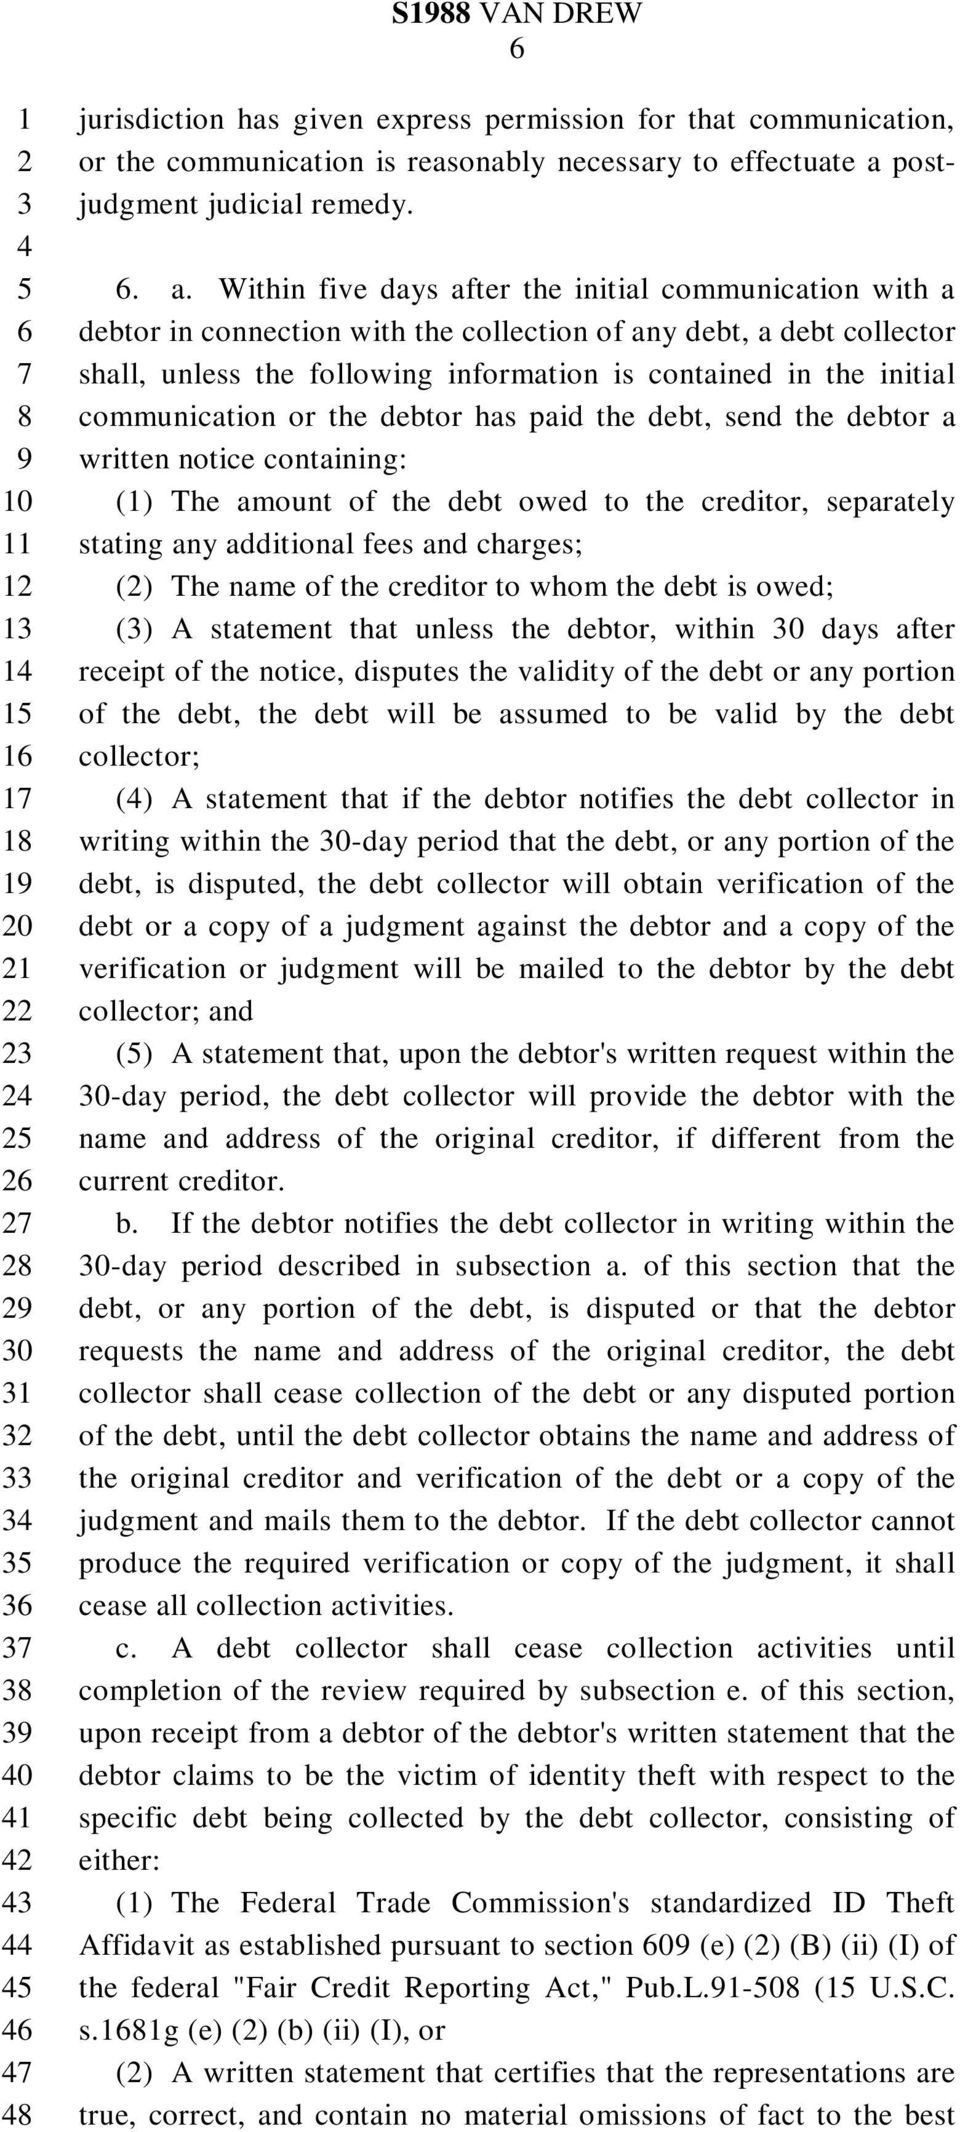 Within five days after the initial communication with a debtor in connection with the collection of any debt, a debt collector shall, unless the following information is contained in the initial